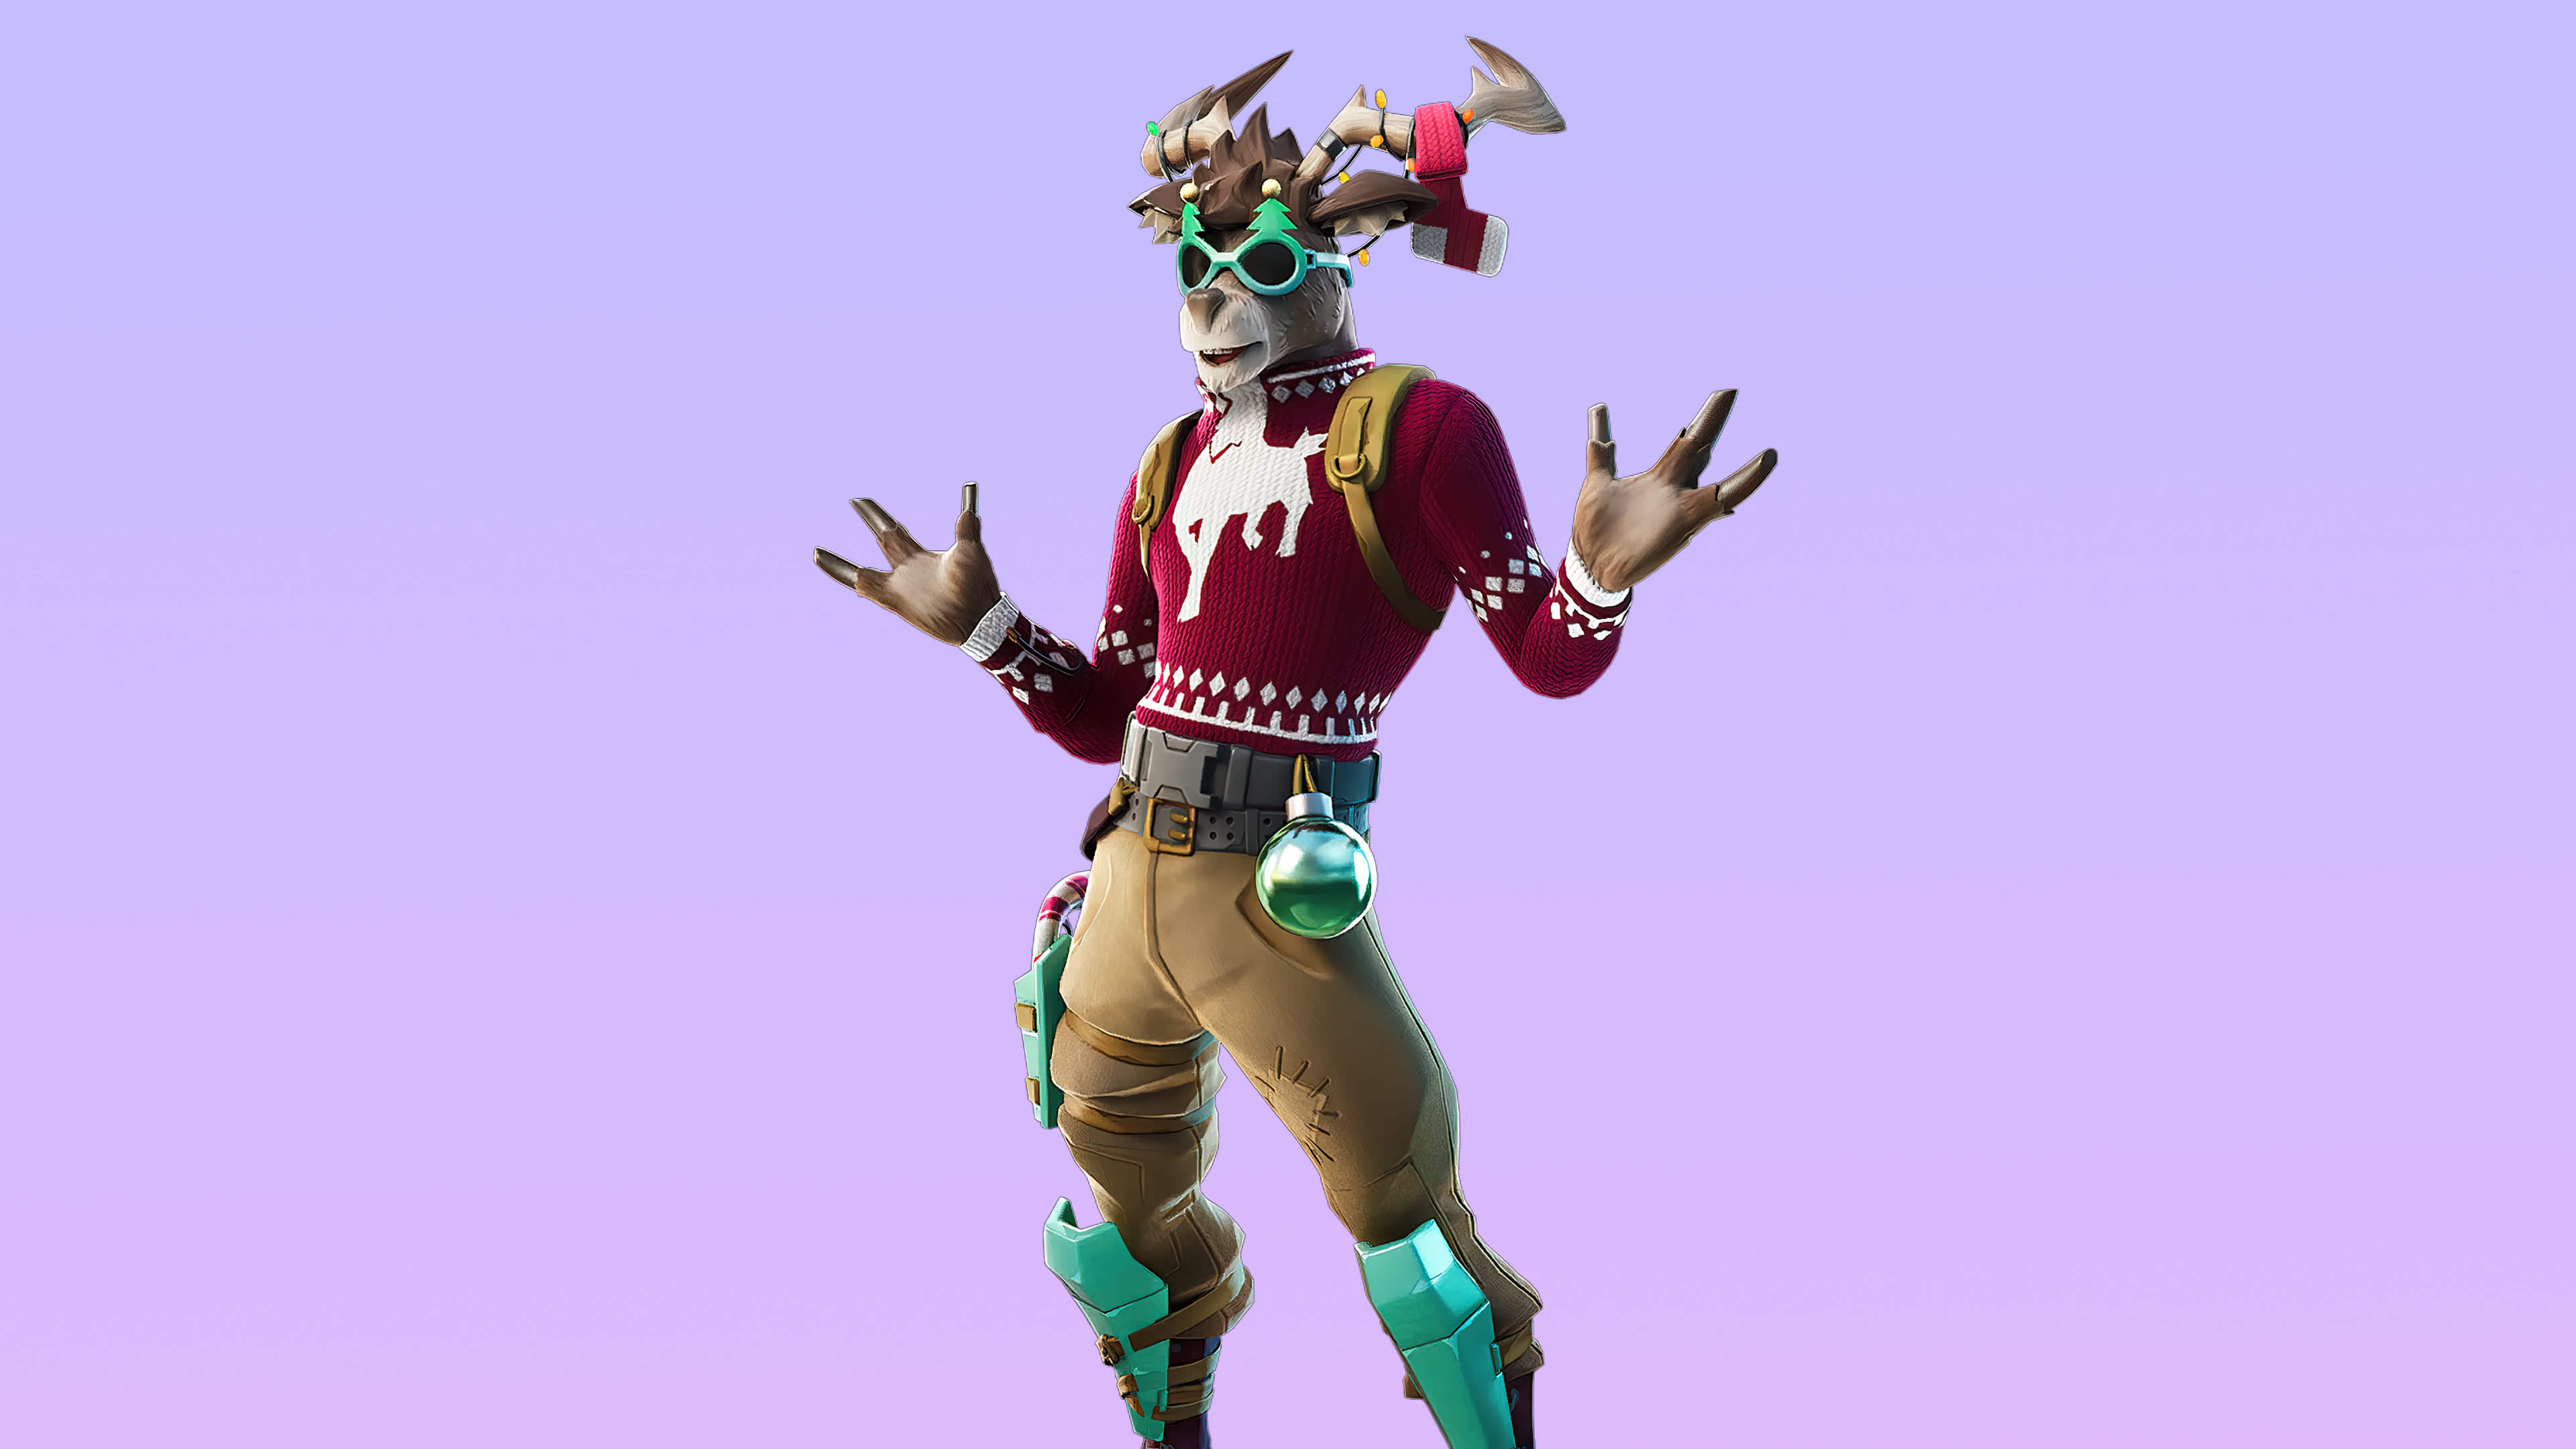 fortnite winter wonderland set dolph skin outfit uhd 4k wallpaper